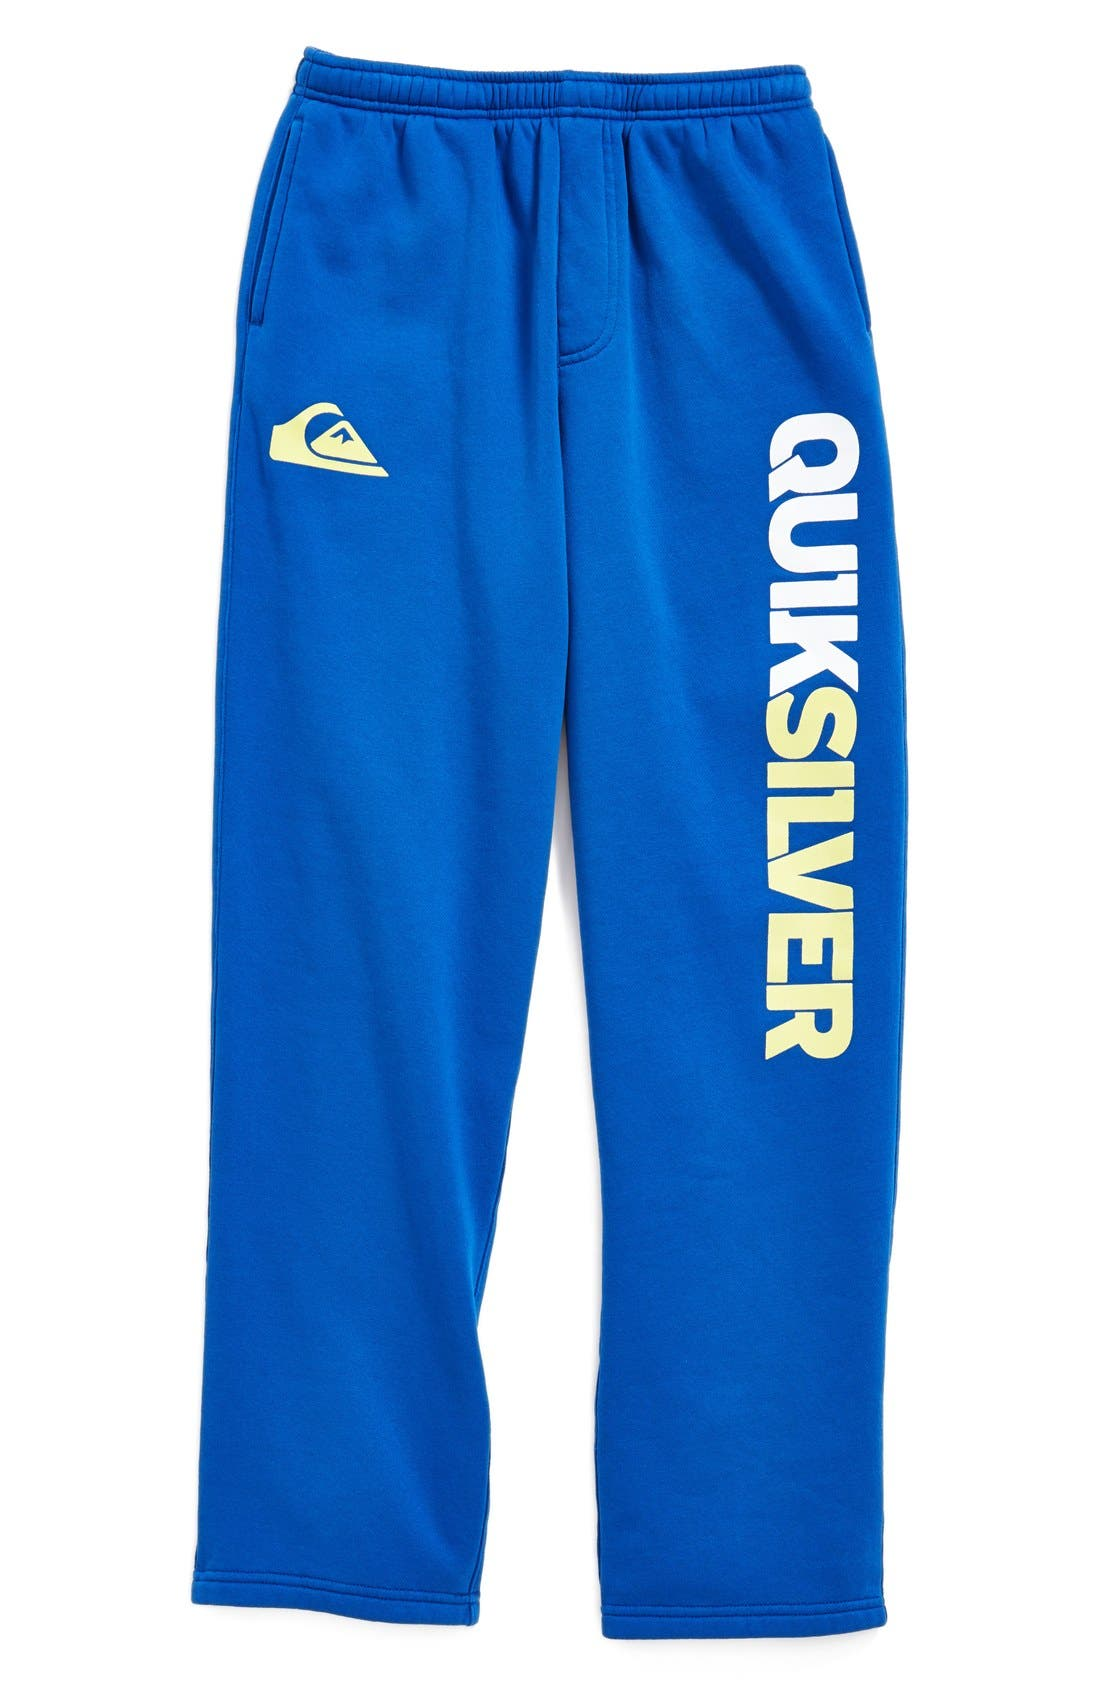 Main Image - Quiksilver 'Mountain Wave' Fleece Pants (Toddler Boys & Little Boys) (Online Only)